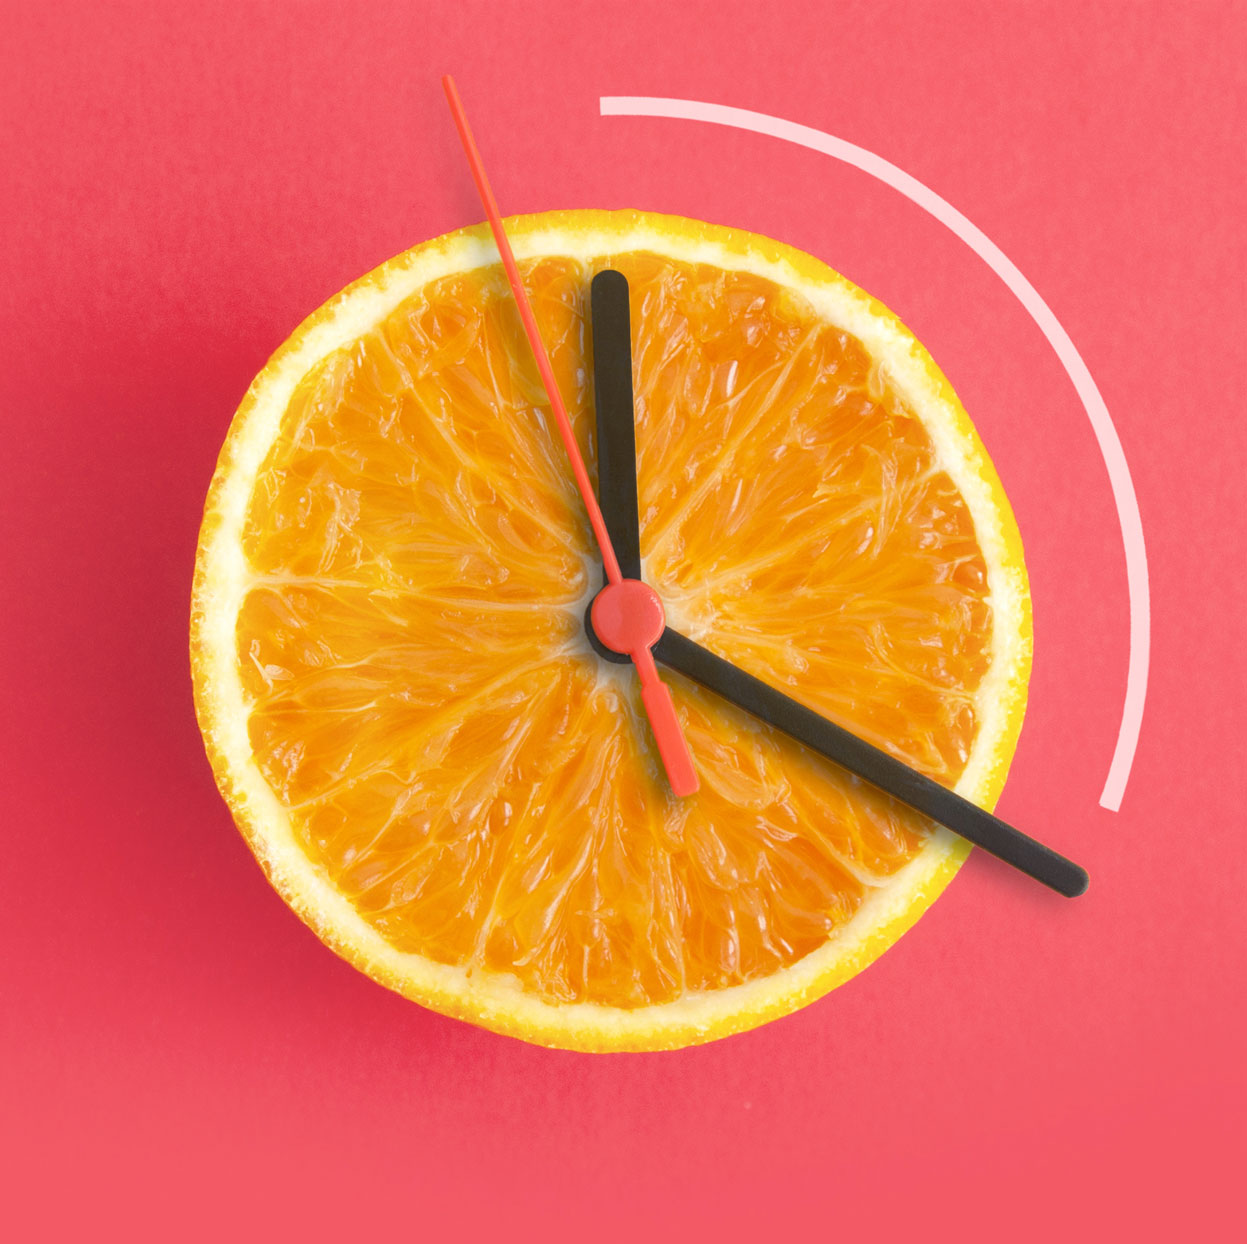 Is Intermittent Fasting Safe for Diabetes?